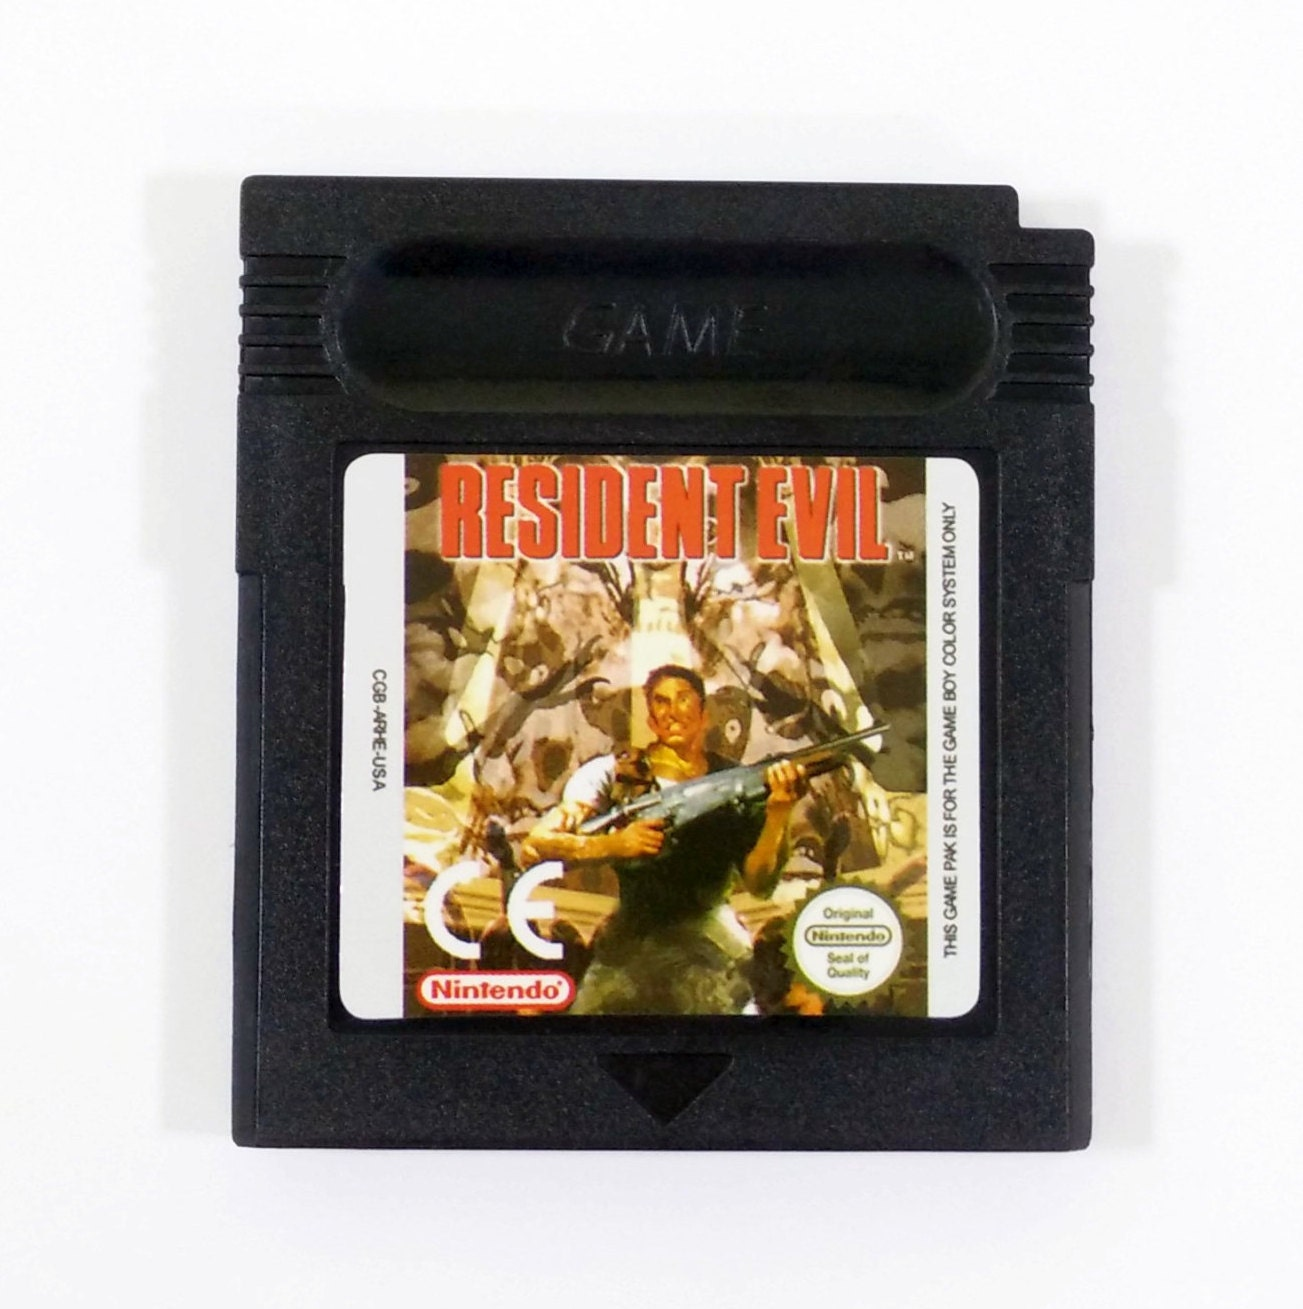 Gameboy color roms for free - Resident Evil Game Boy Color Cartridge Unreleased Nintendo Customized Gameboy Cart Gbc Free Shipping